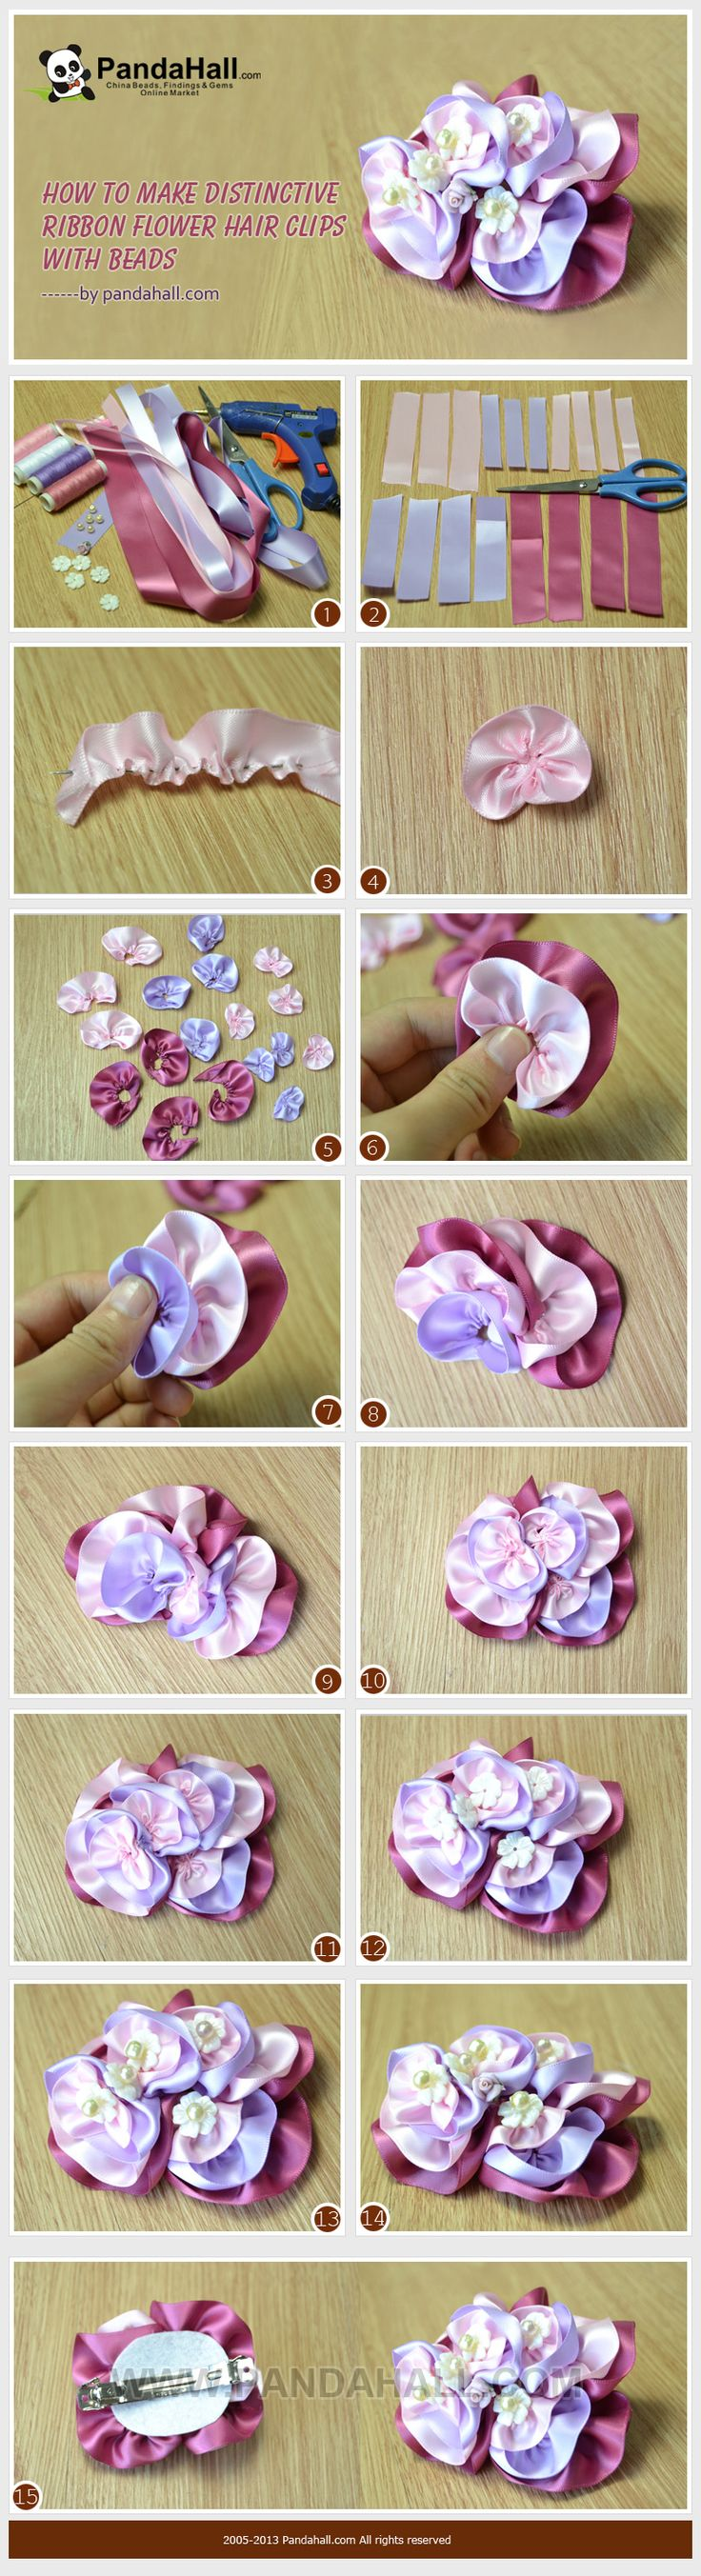 How to Make Distinctive Ribbon Flower Hair Clips with Beads